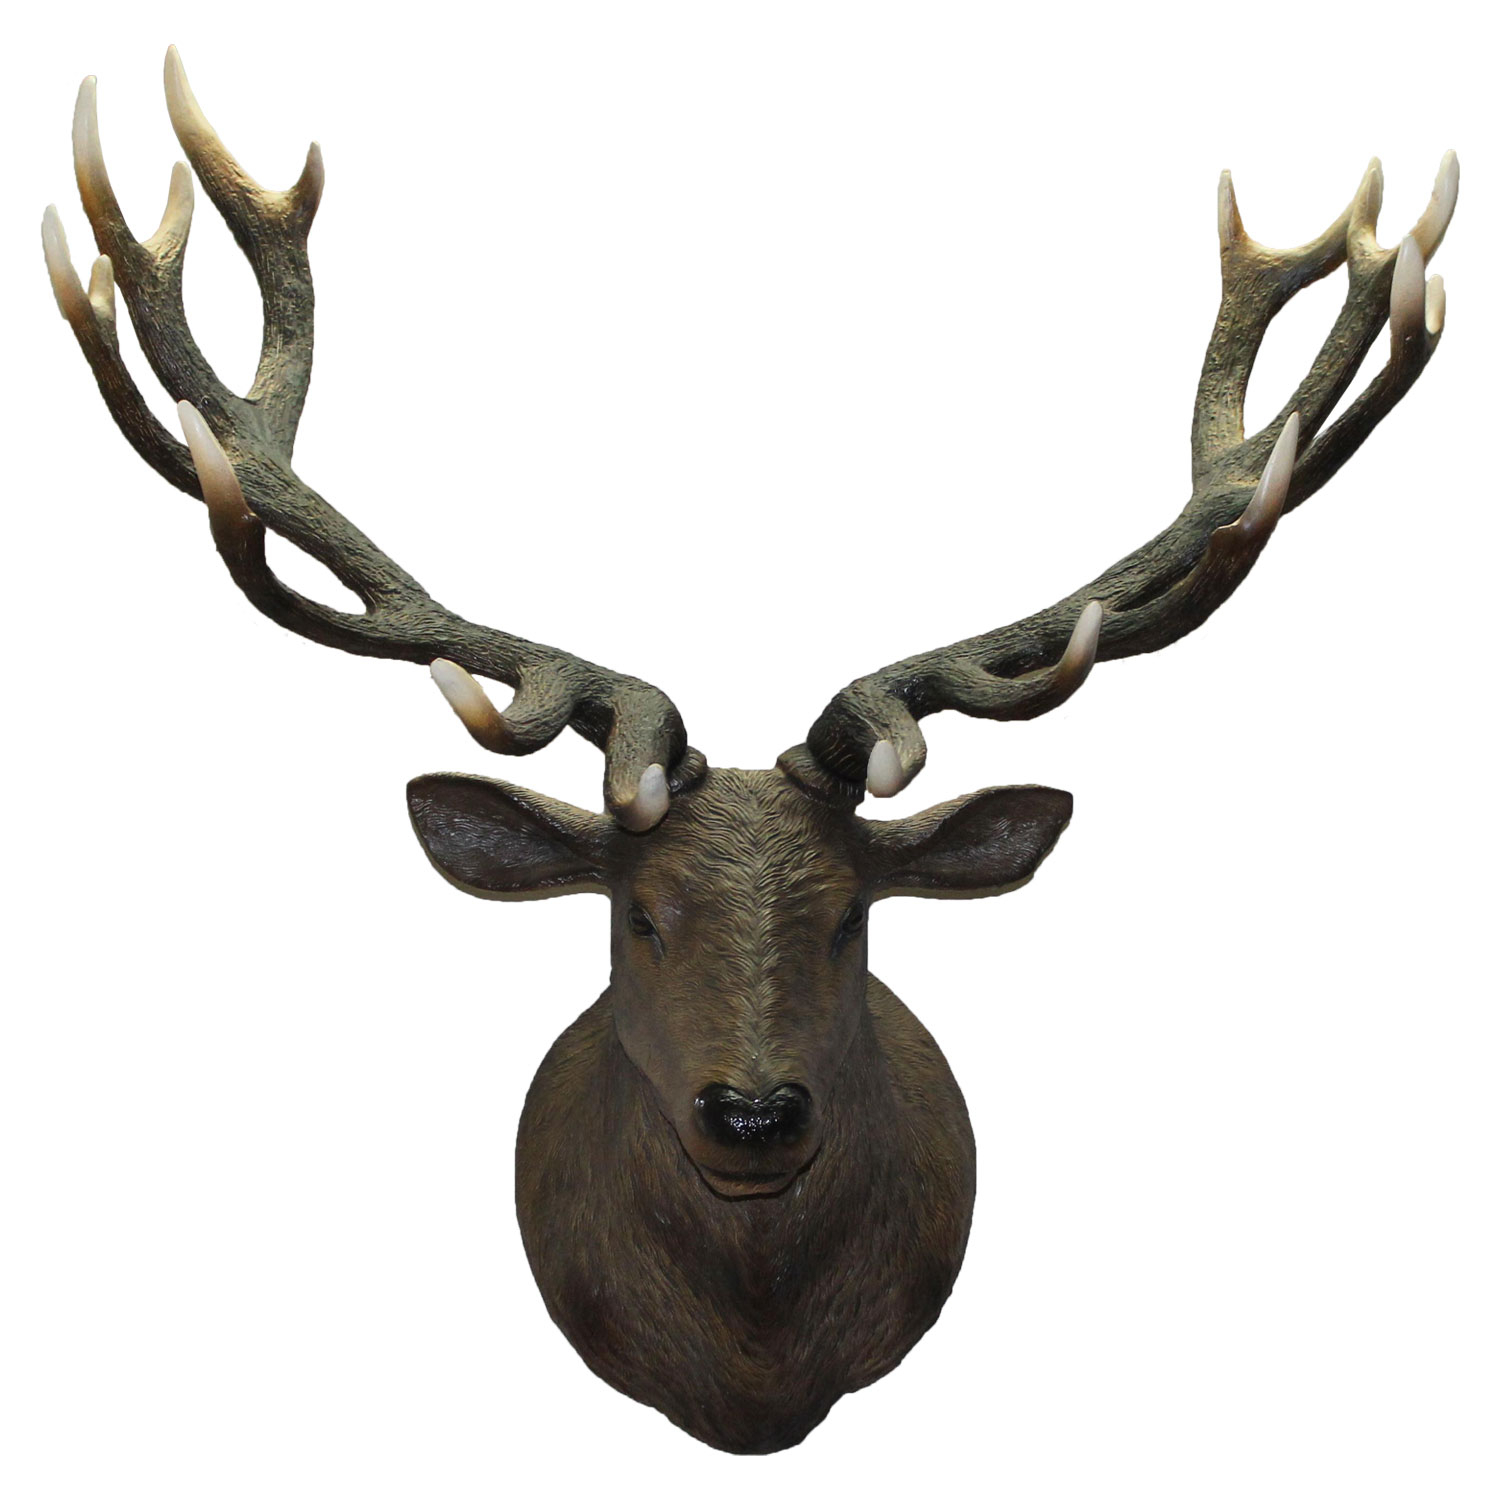 Life Size Big Deer Stag Wall Mount Faux Taxidermy Bust Head Rack Antlers Intended For Large Deer Head Faux Taxidermy Wall Decor (View 16 of 30)